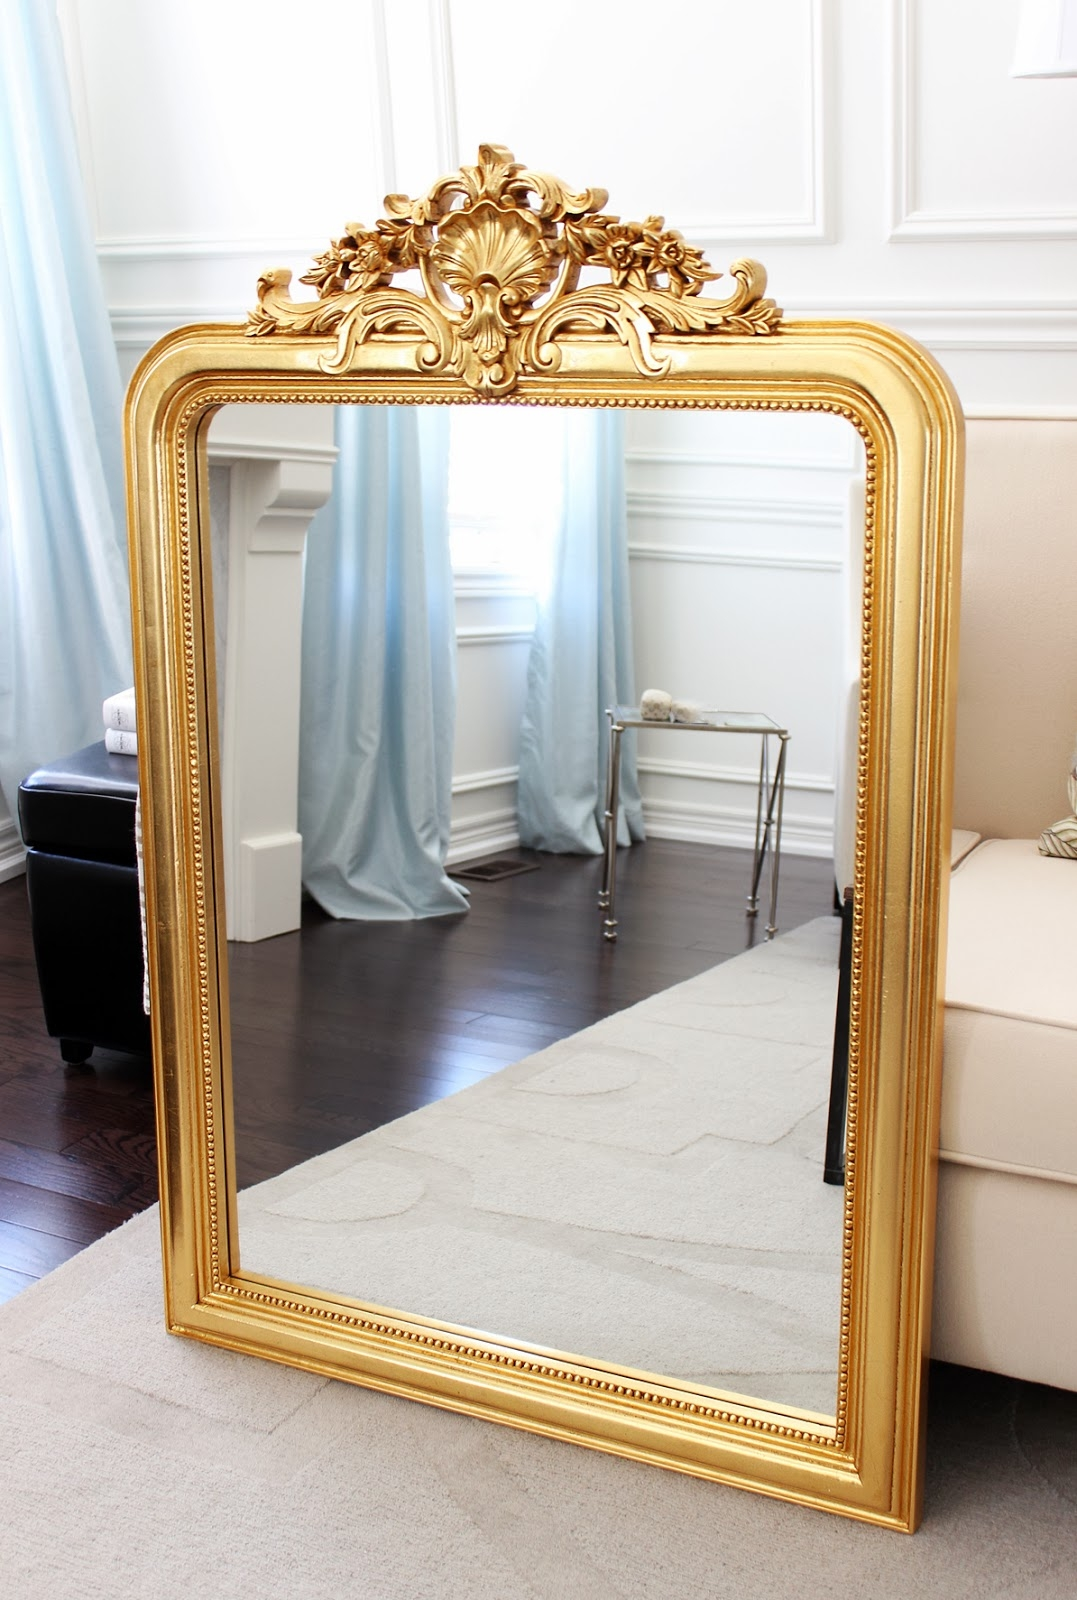 Antique Reproduction Louis Philippe Gilt Mirror Antique French Intended For Reproduction Mirrors (View 1 of 15)